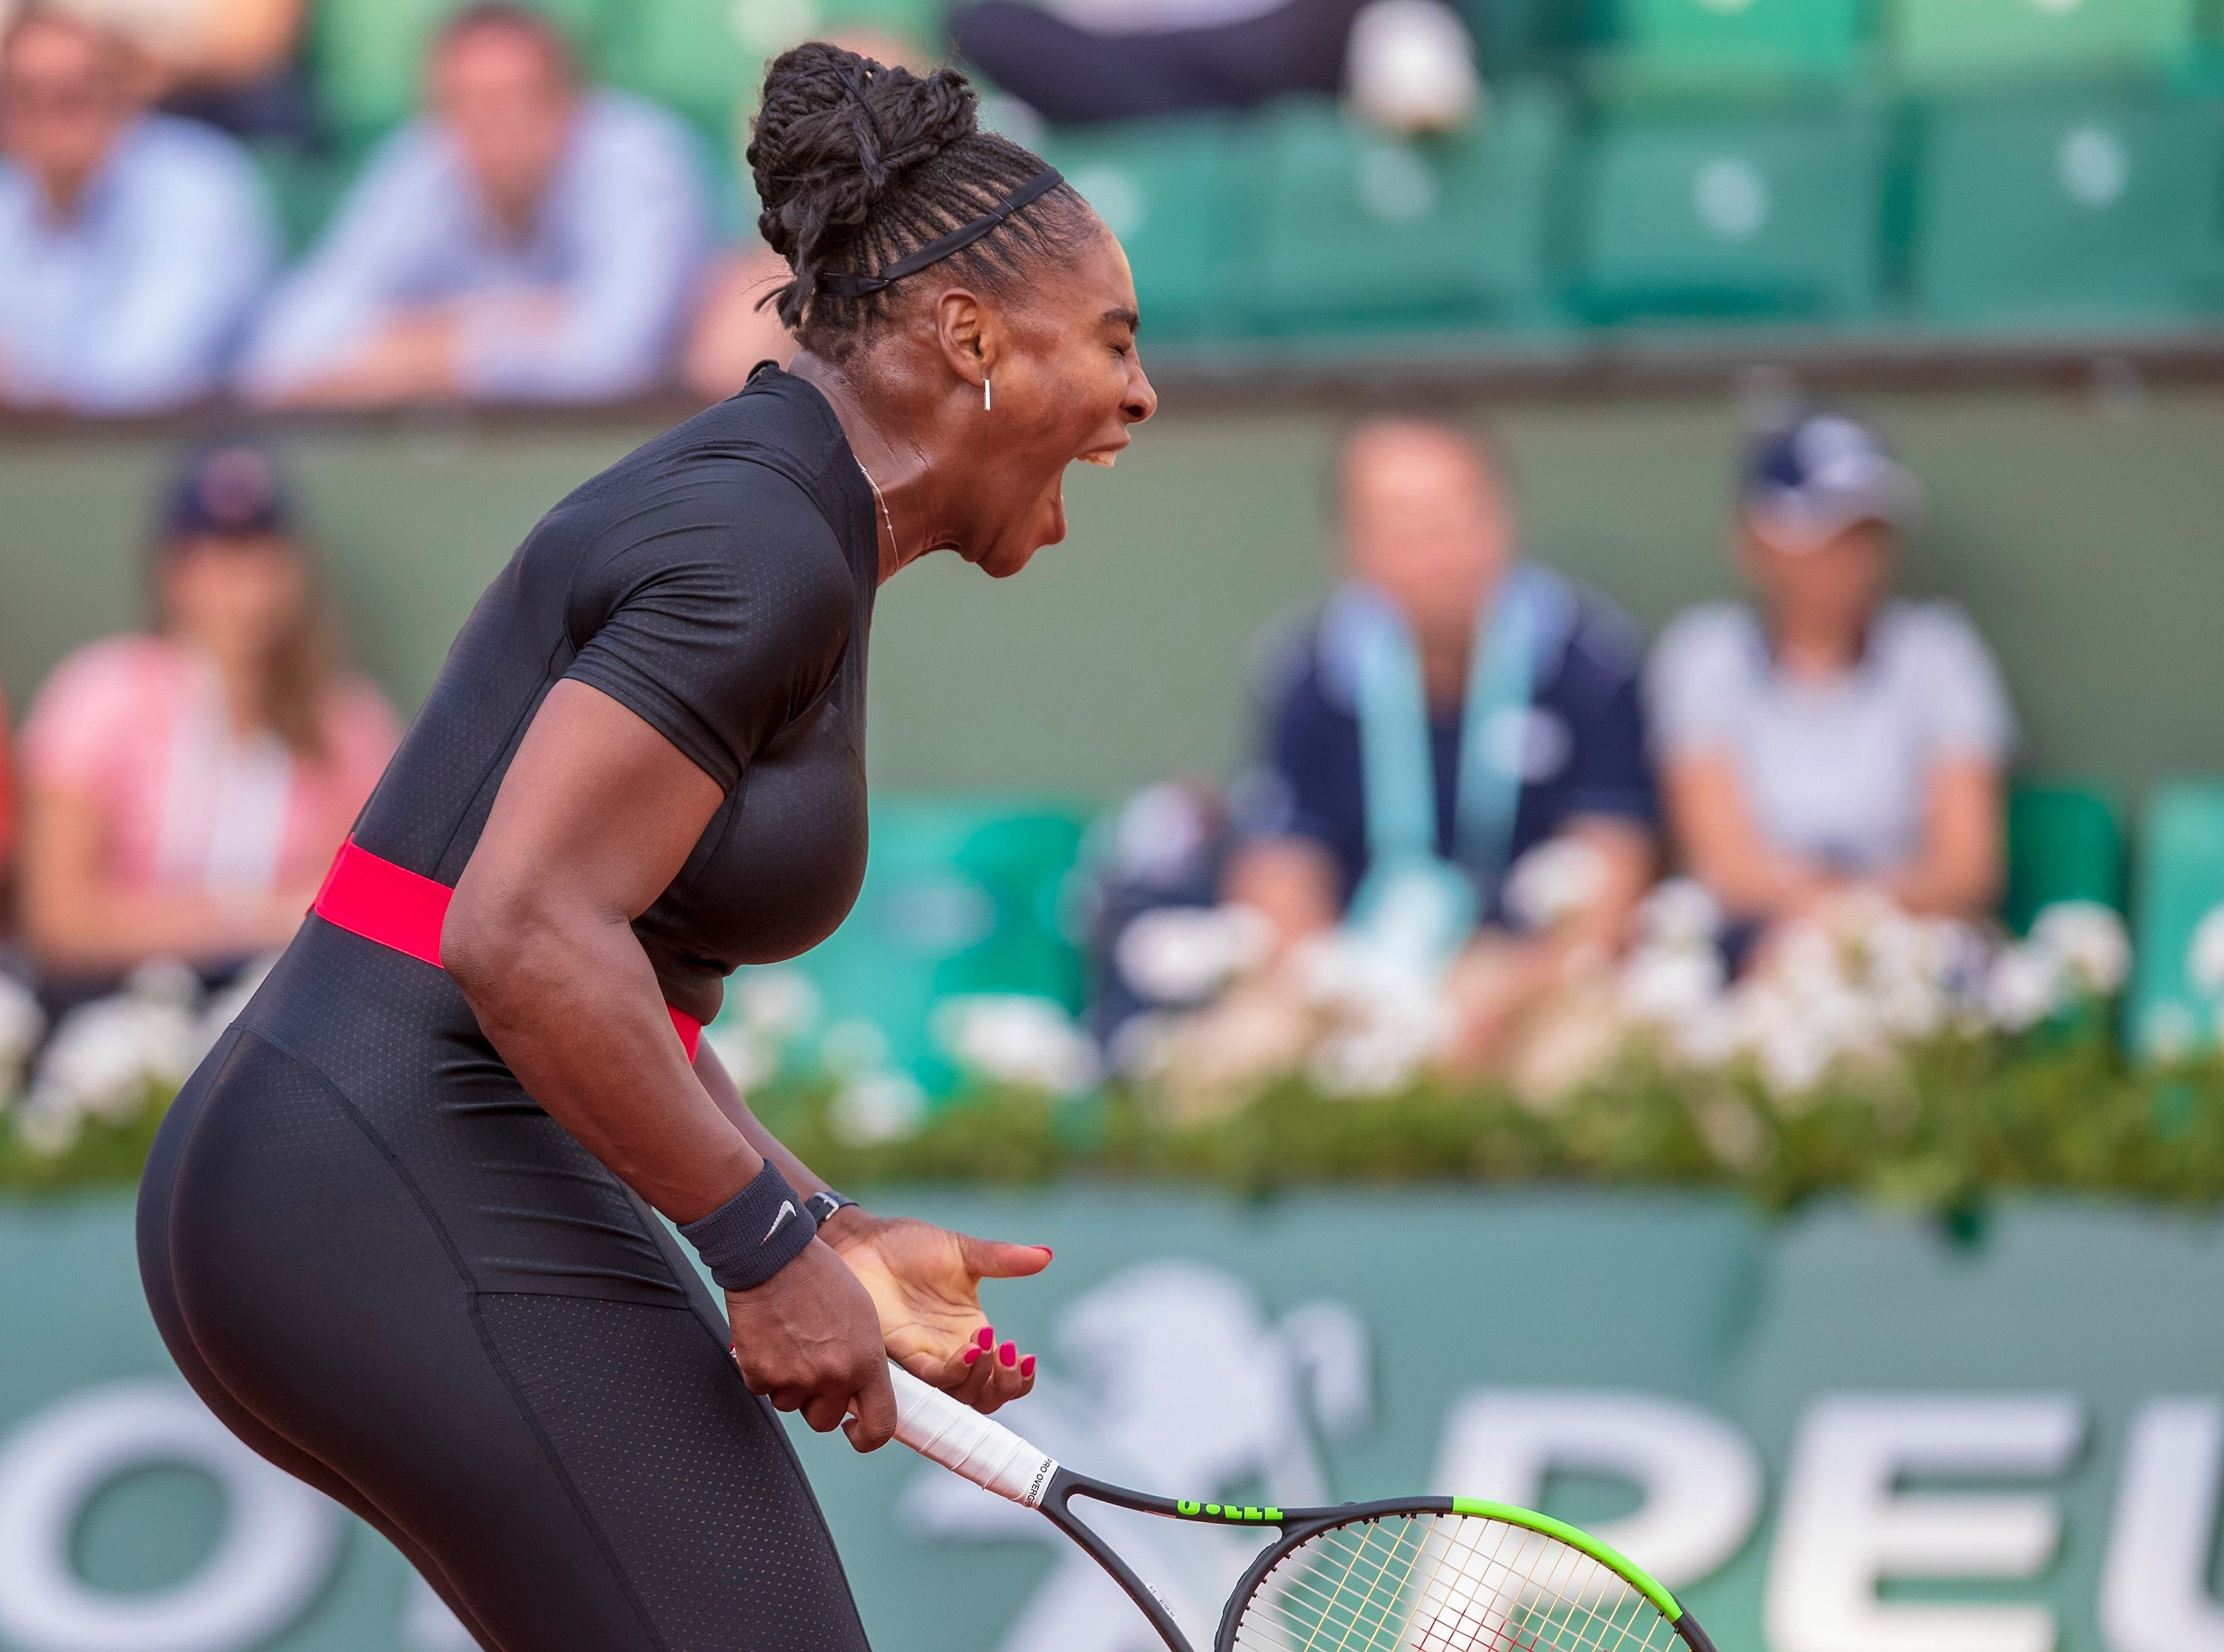 May 31: Serena Williams (USA) reacts during her match against Ashleigh Barty (AUS) on Day 5 of the French Open.